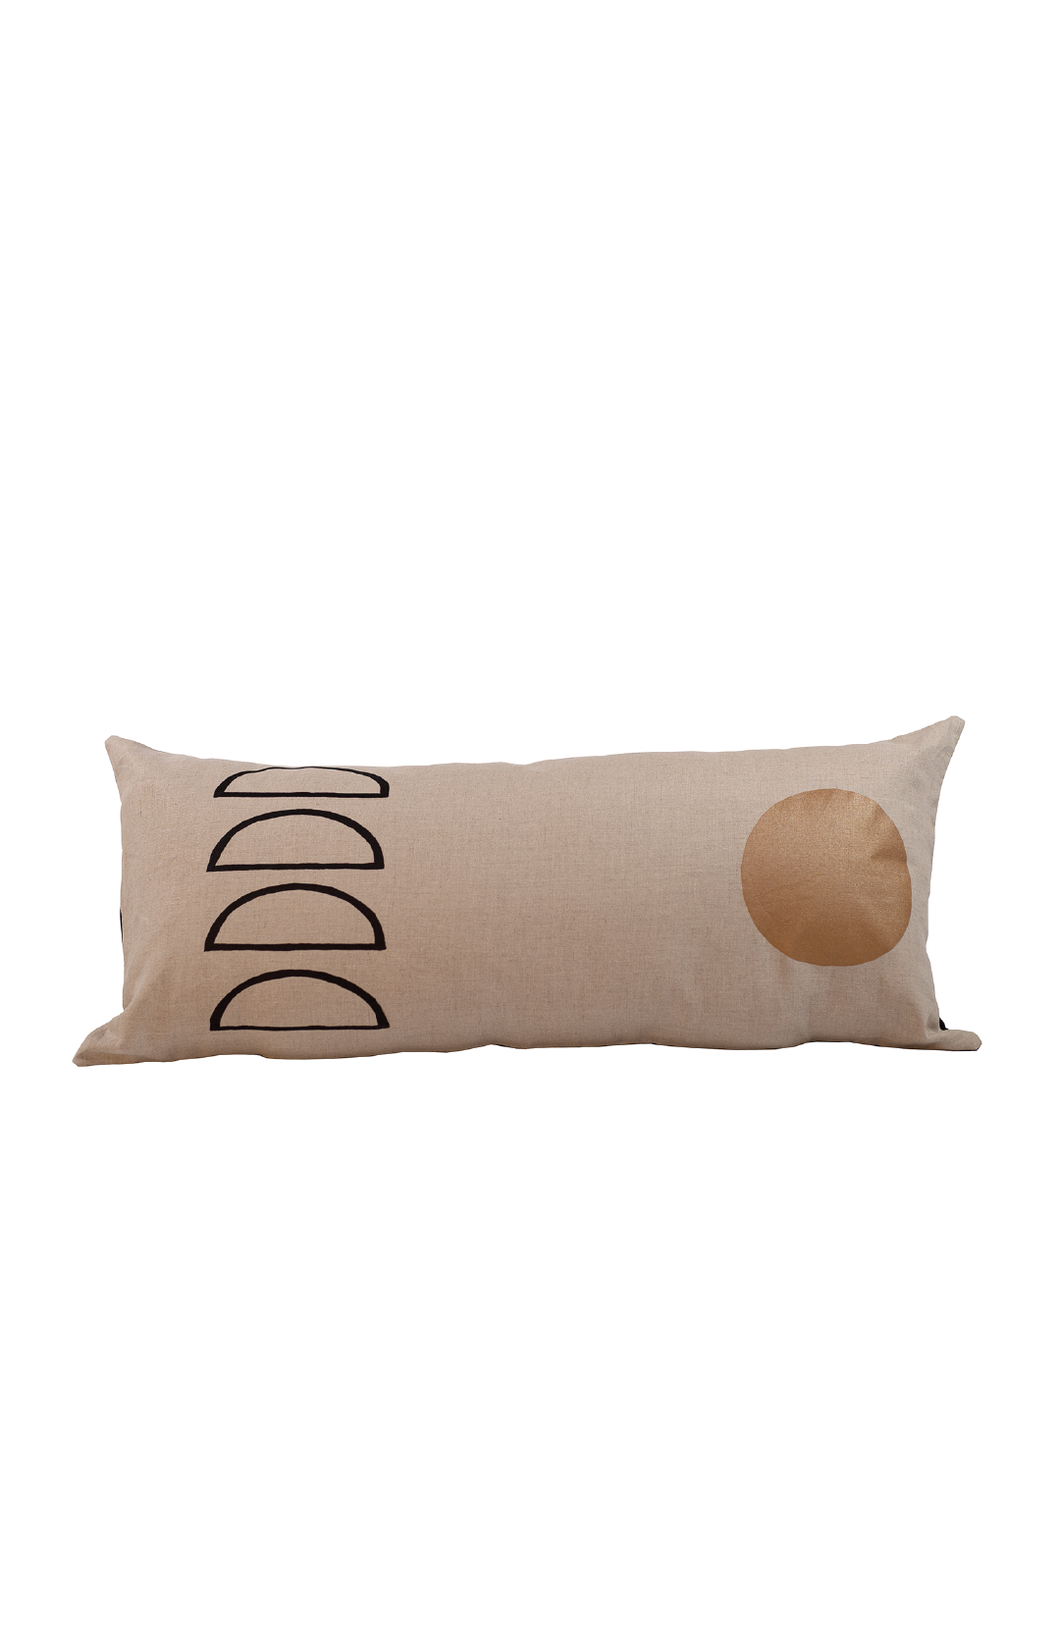 Moon Lumbar Pillow